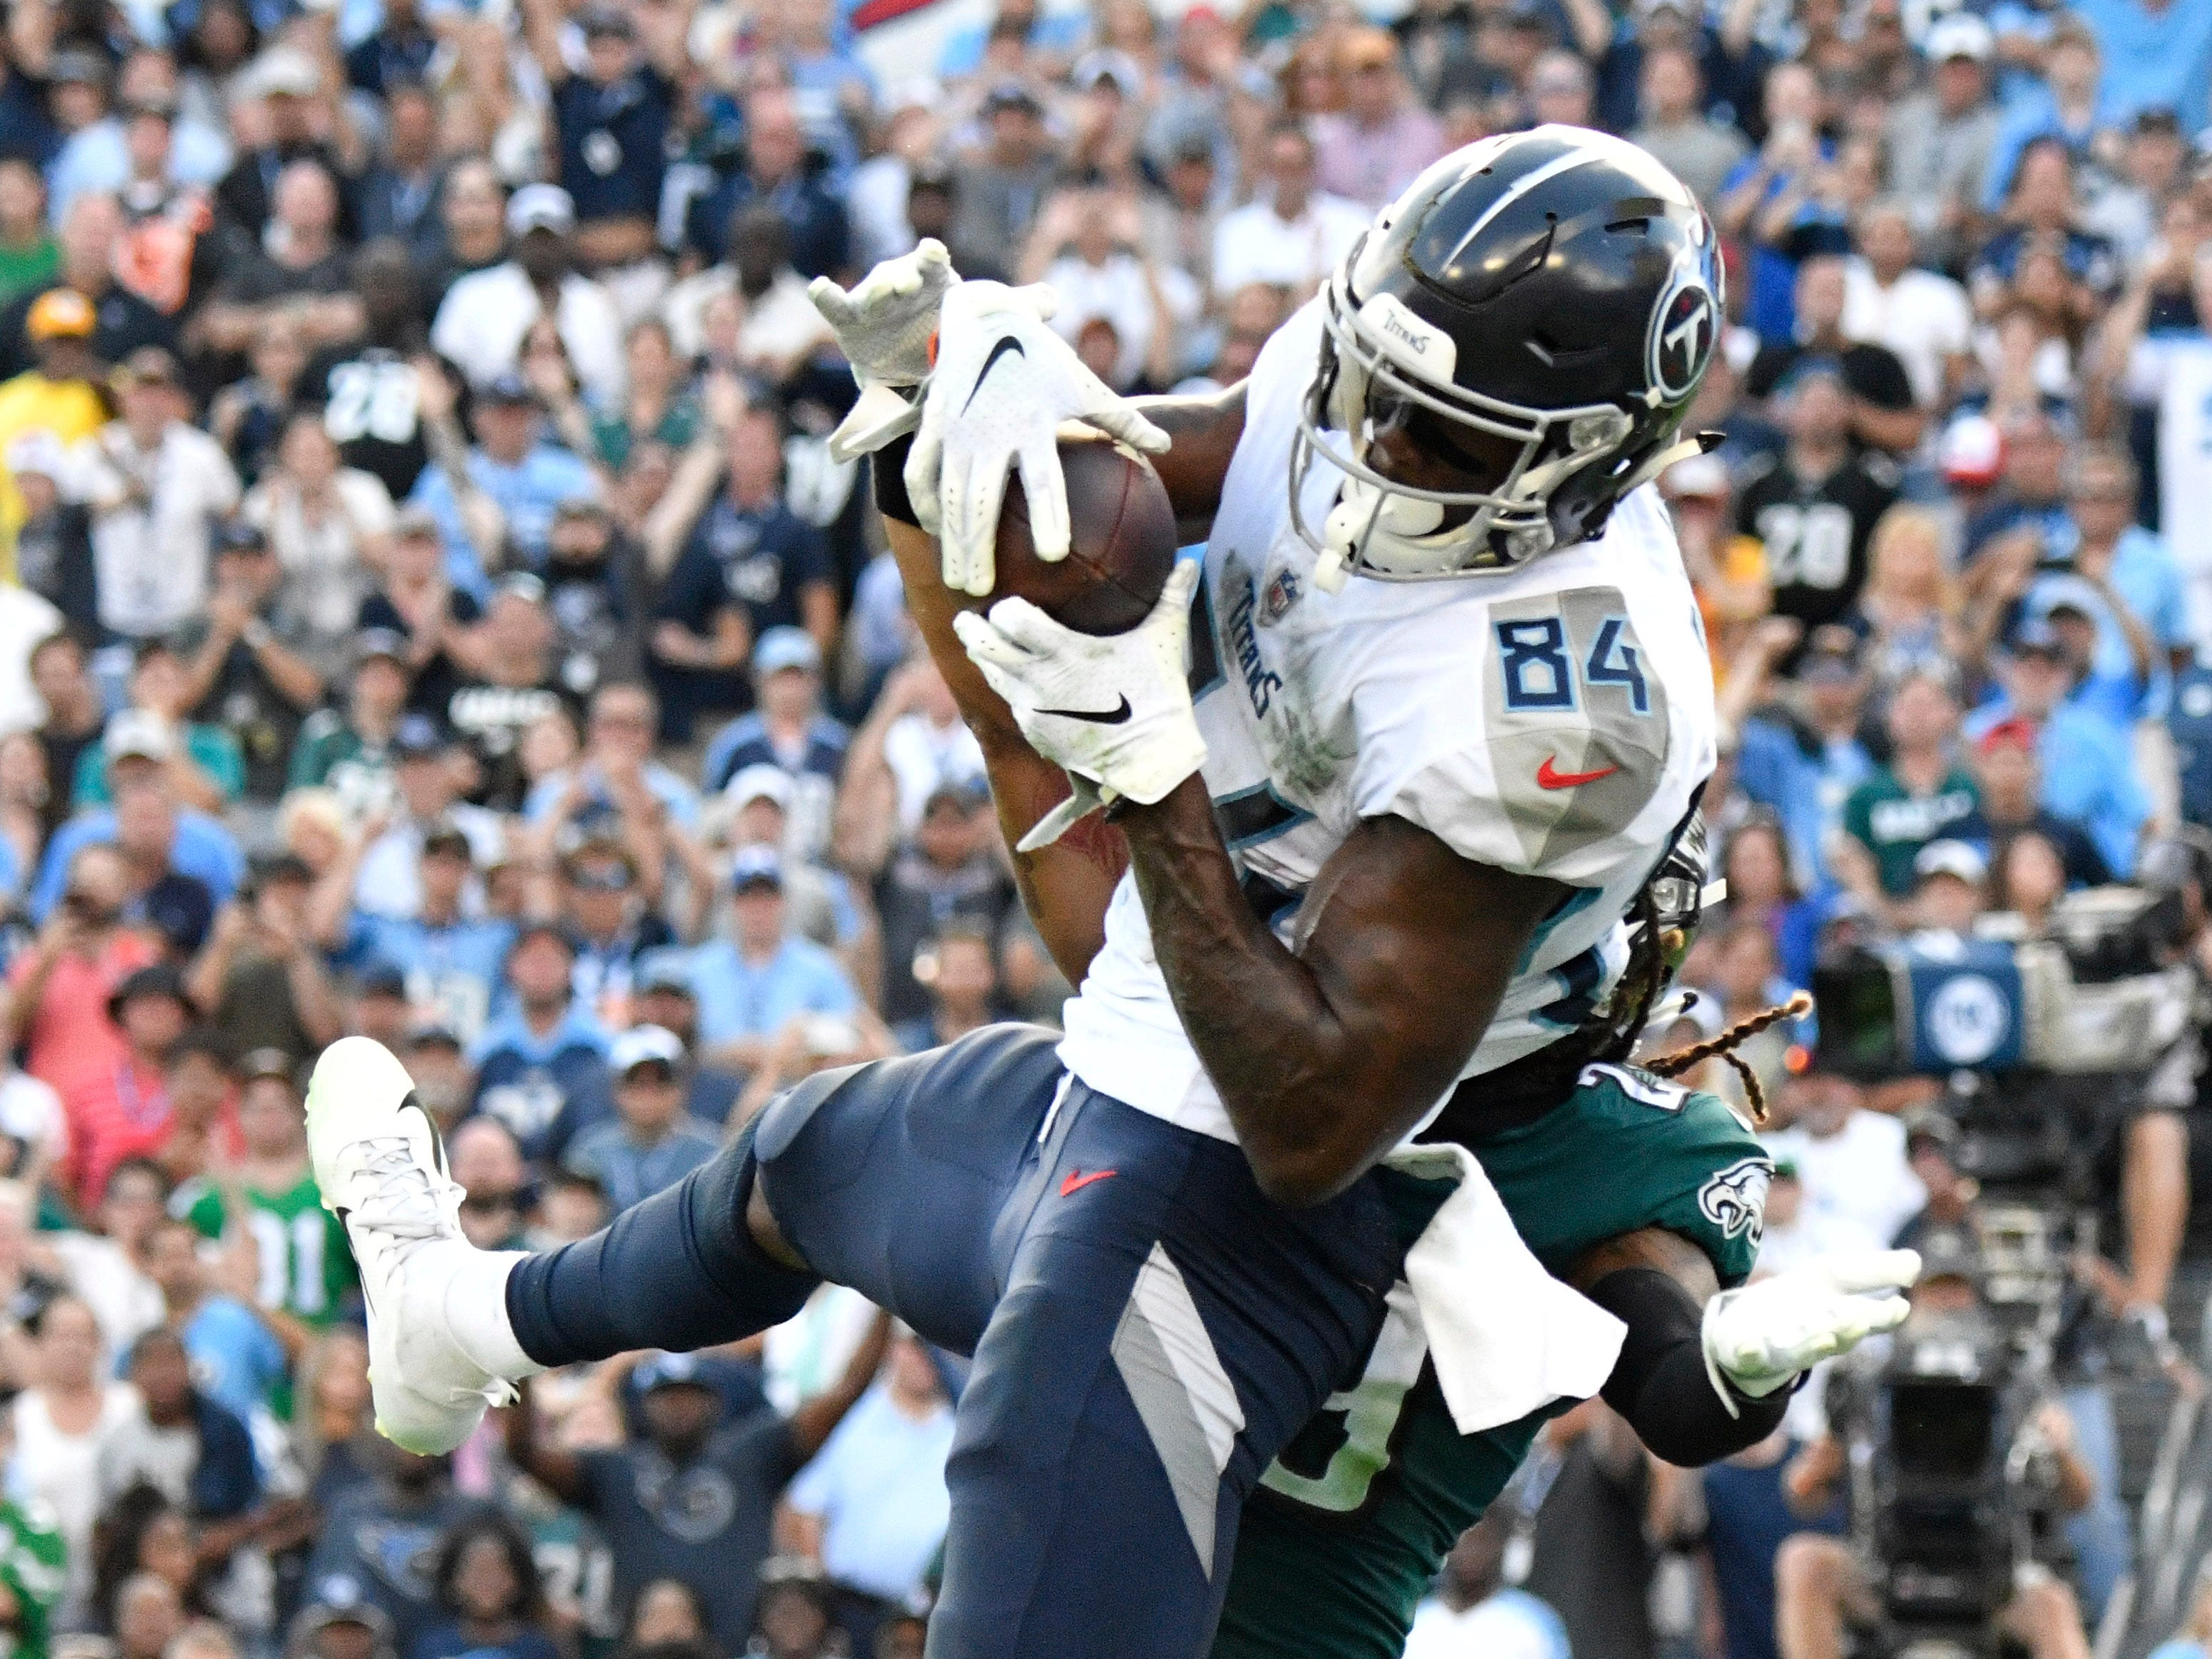 Titans wide receiver Corey Davis (84) makes the game-winning touchdown catch over Eagles cornerback Avonte Maddox (29) in overtime at Nissan Stadium Sunday, Sept. 30, 2018, in Nashville, Tenn.